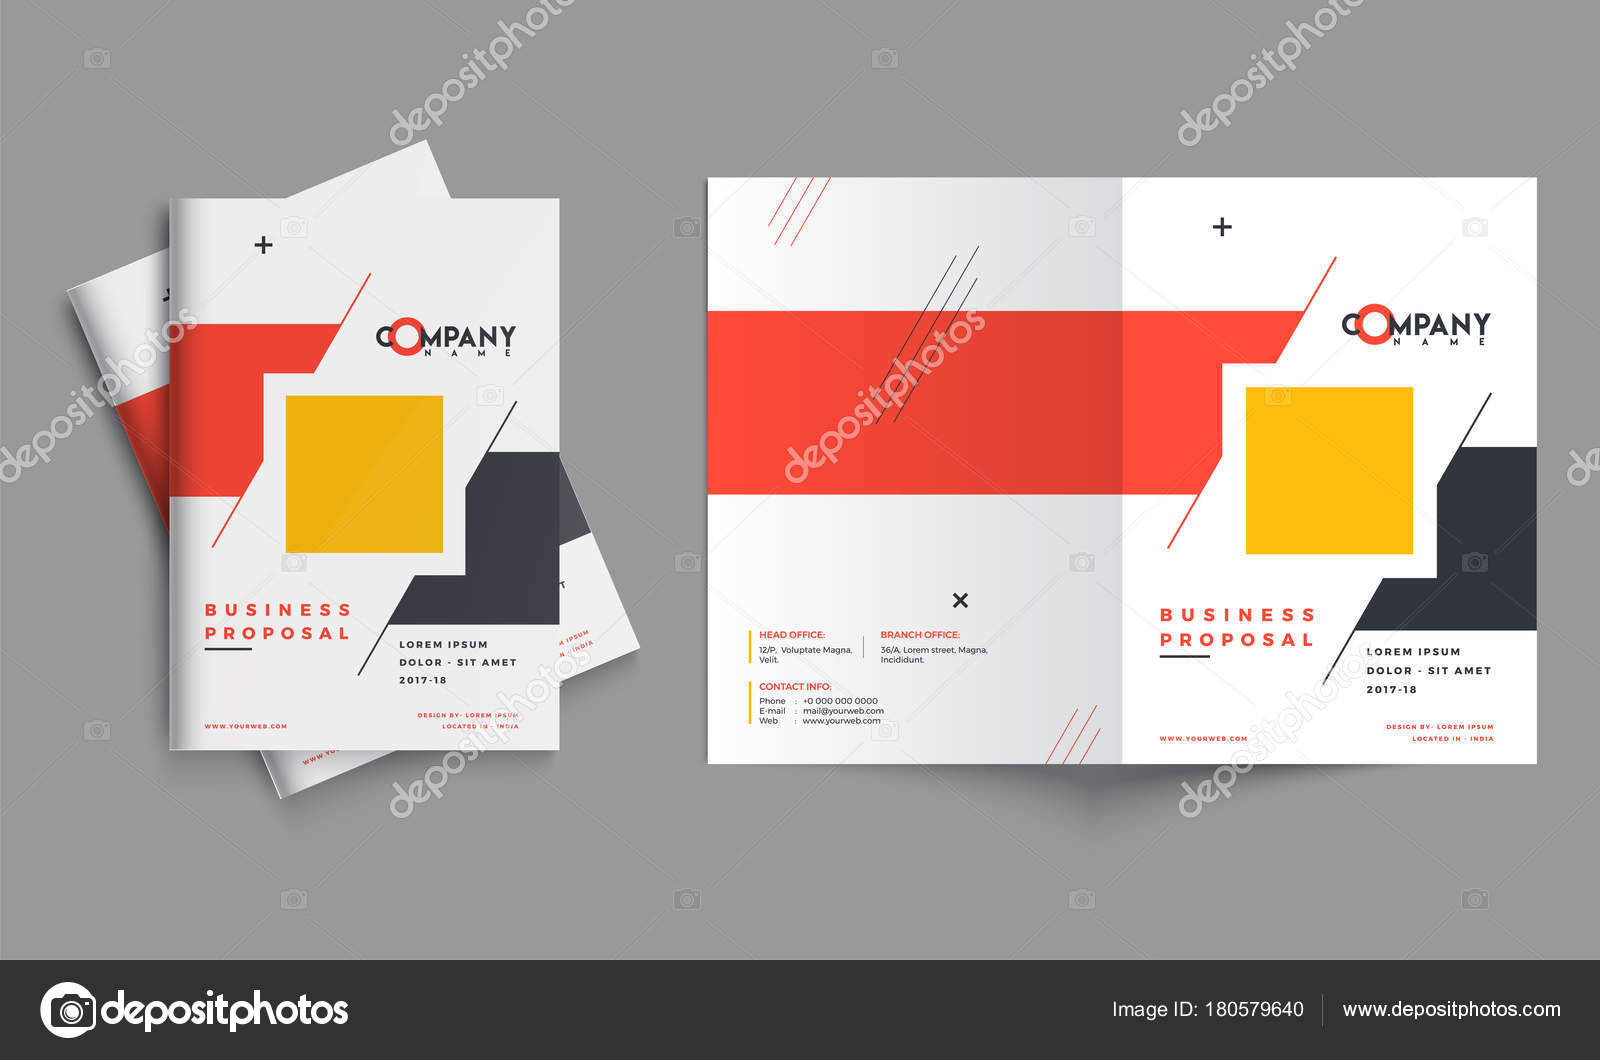 Creative business proposal design corporate template layout wit creative business proposal design corporate template layout wit stock vector accmission Images